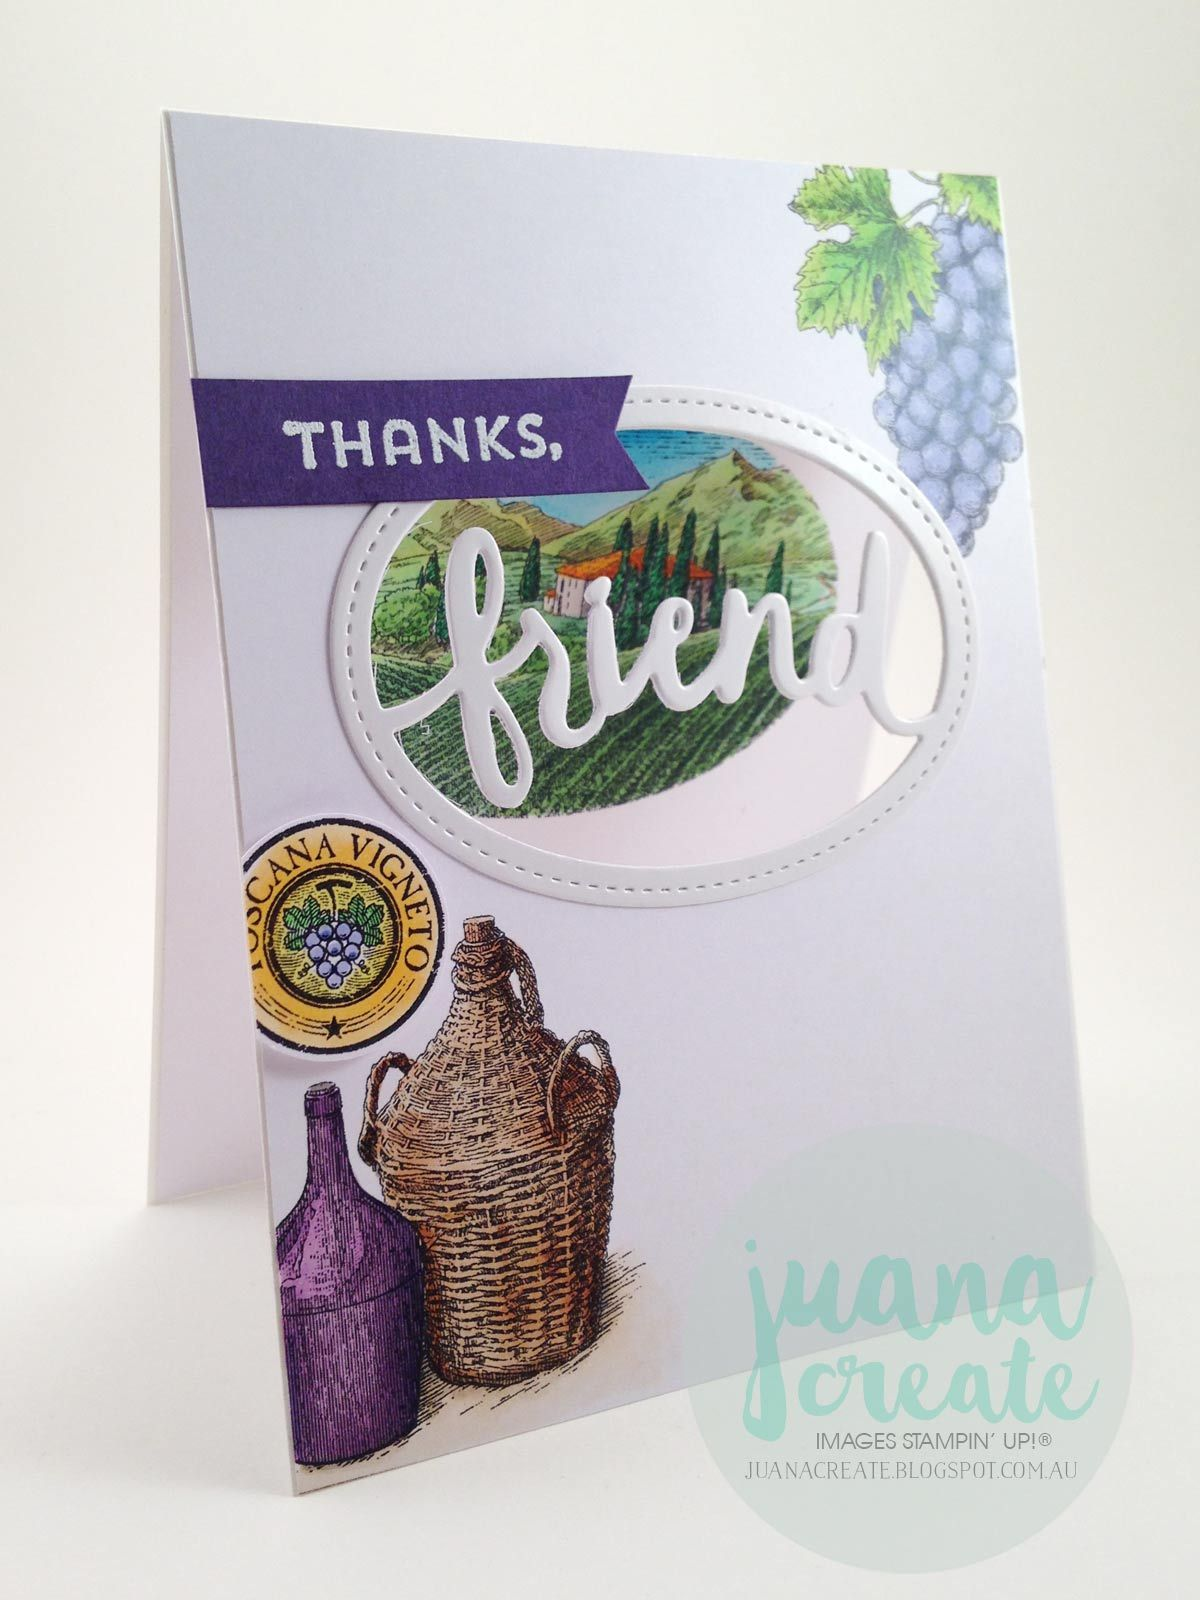 1 stampin' up! Demonstrator pootles – dashing deer tutorial bundle.